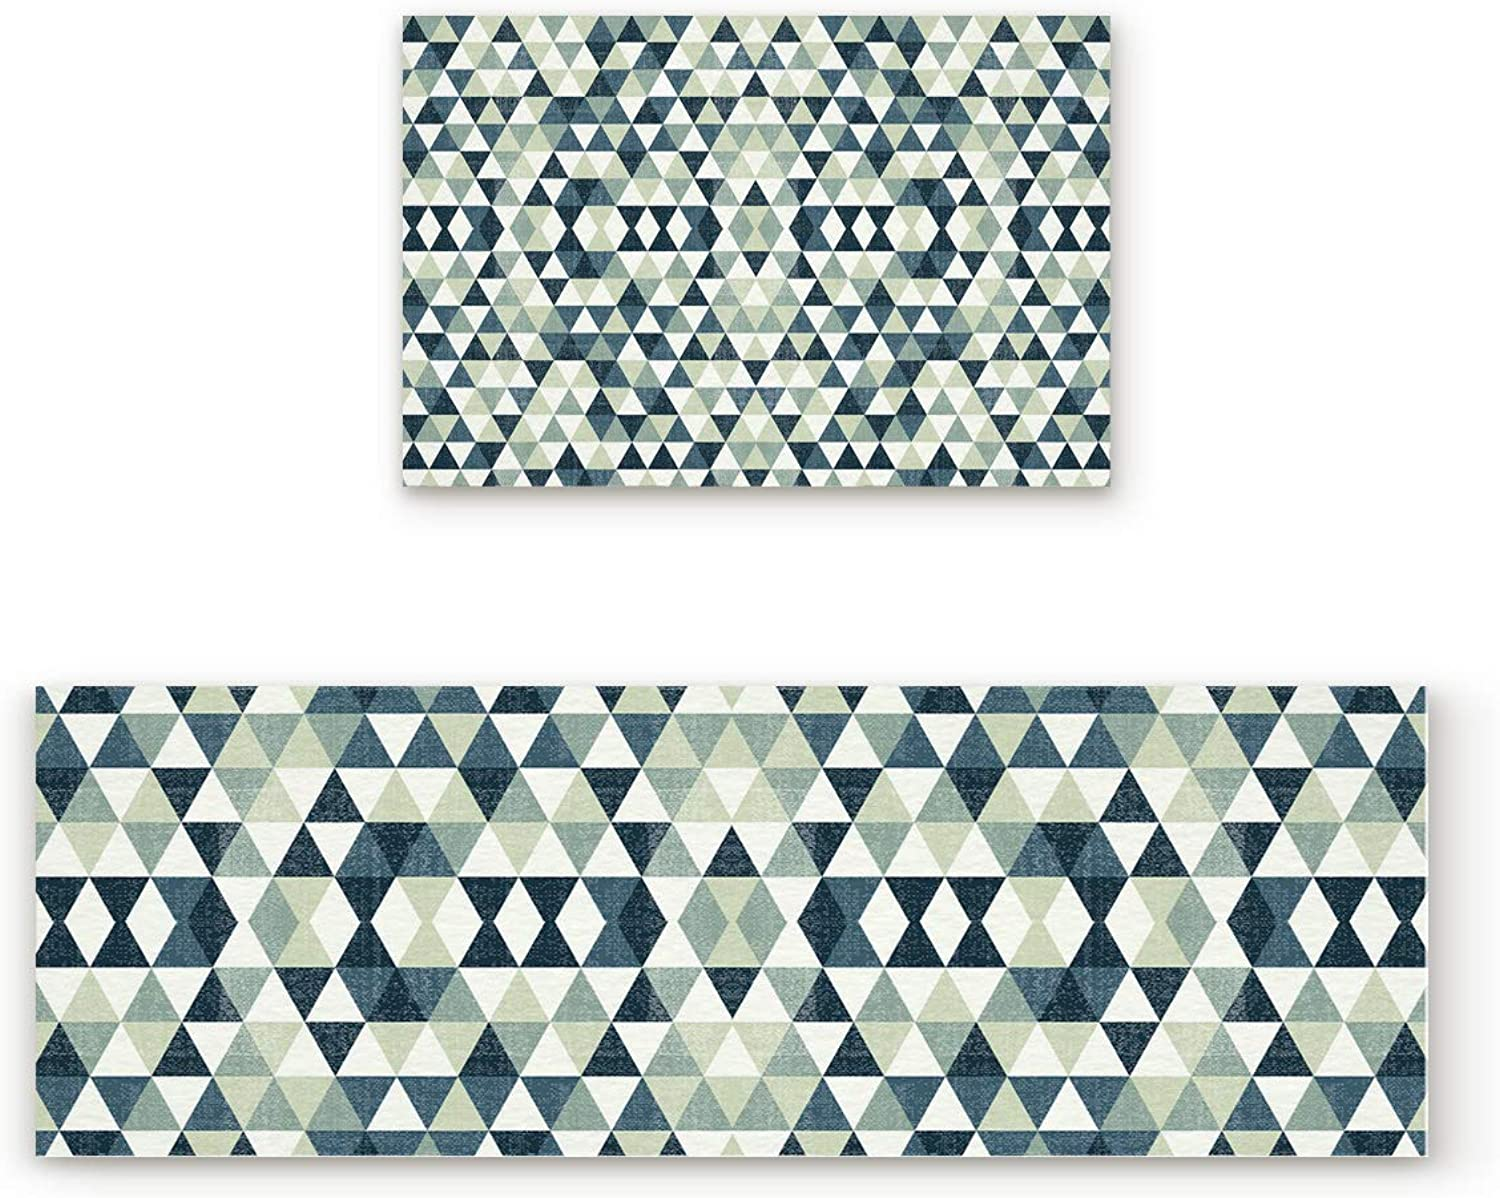 Aomike 2 Piece Non-Slip Kitchen Mat Rubber Backing Doormat Triangle Rhombus Geometric Pattern Runner Rug Set, Hallway Living Room Balcony Bathroom Carpet Sets (19.7  x 31.5 +19.7  x 63 )